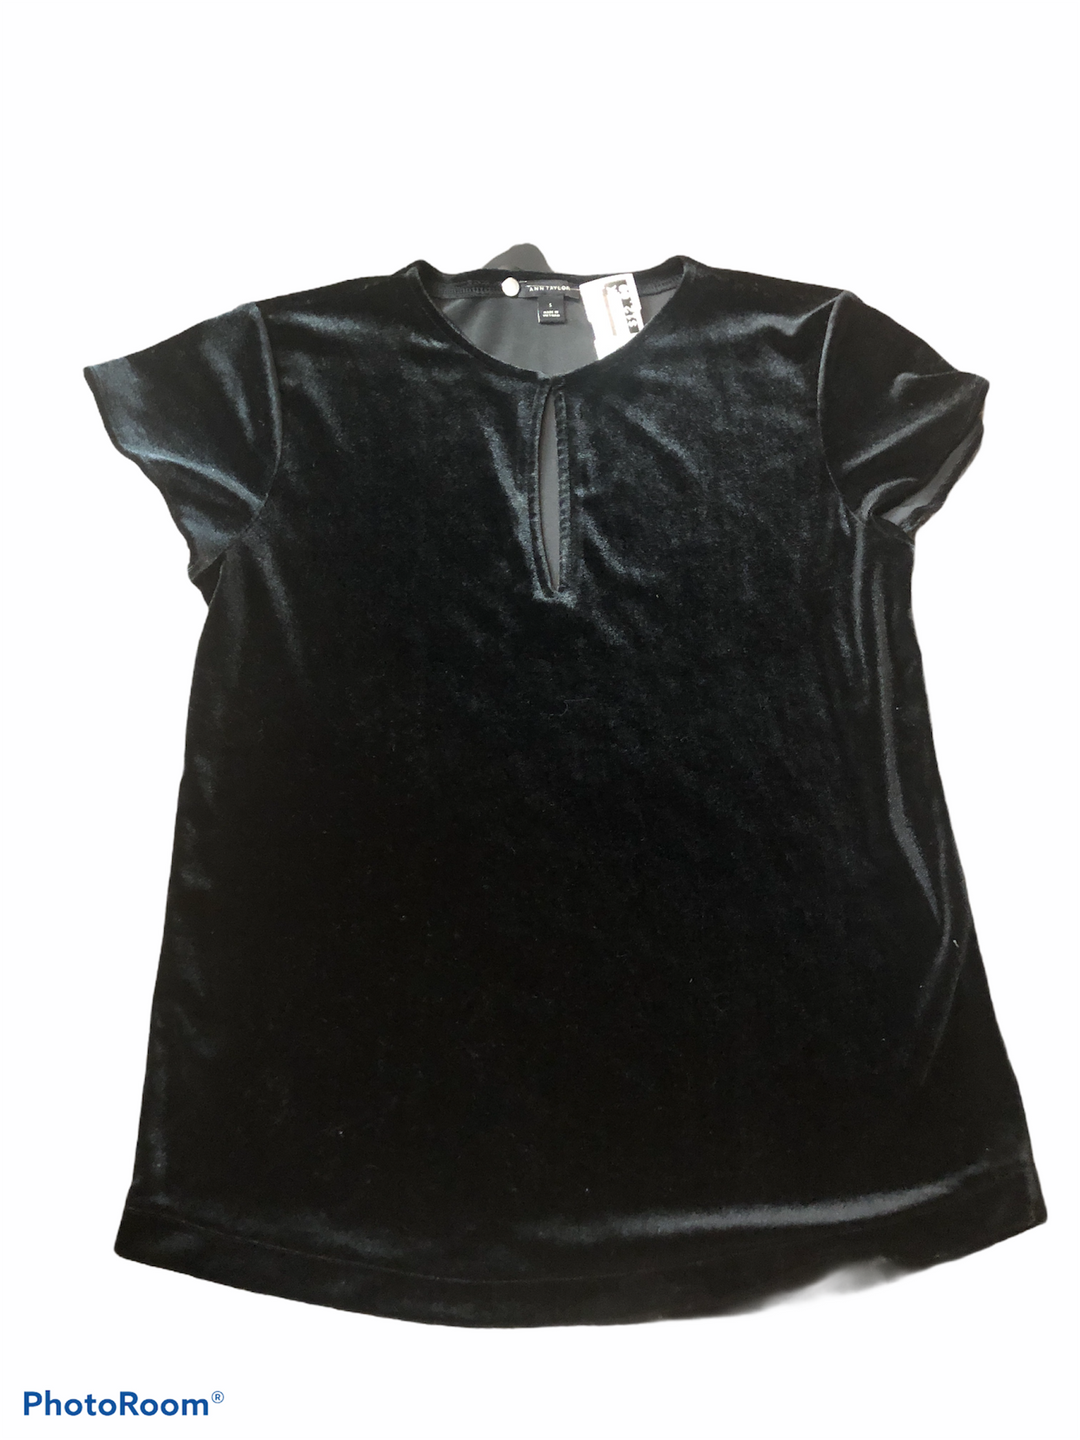 Primary Photo - BRAND: ANN TAYLOR <BR>STYLE: TOP SHORT SLEEVE <BR>COLOR: BLACK <BR>SIZE: S <BR>SKU: 206-20693-4609